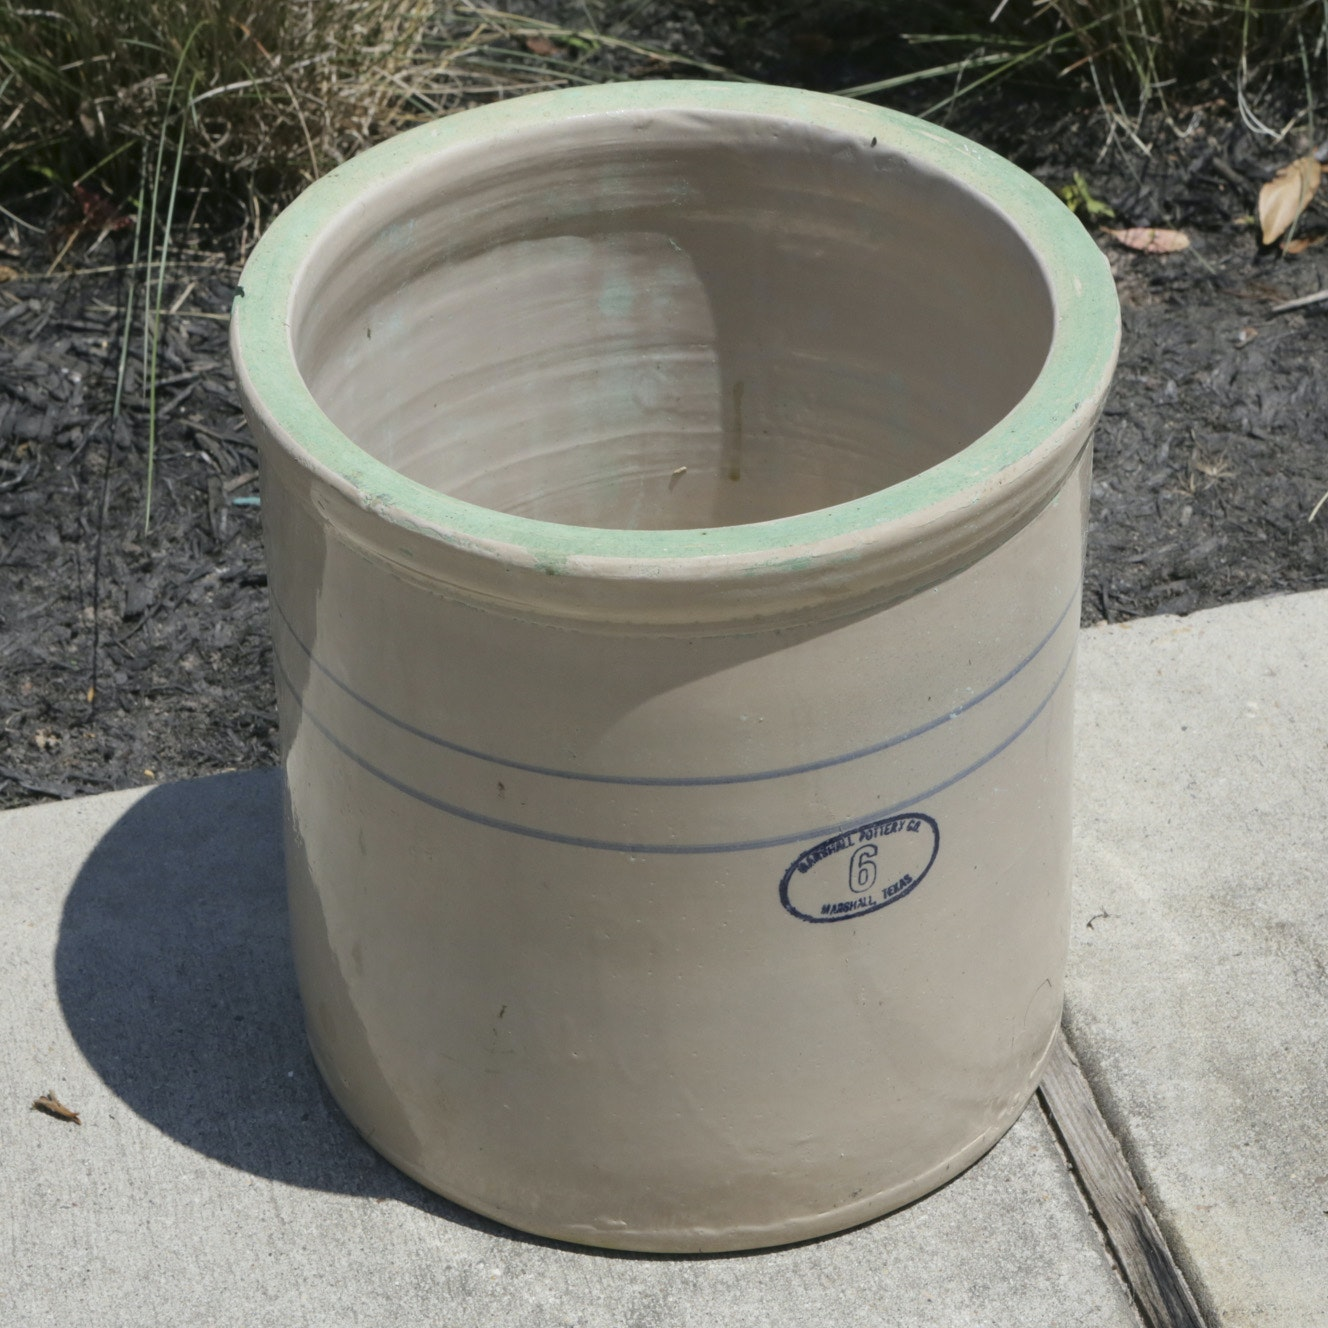 Marshall Pottery Co. Stoneware Crock